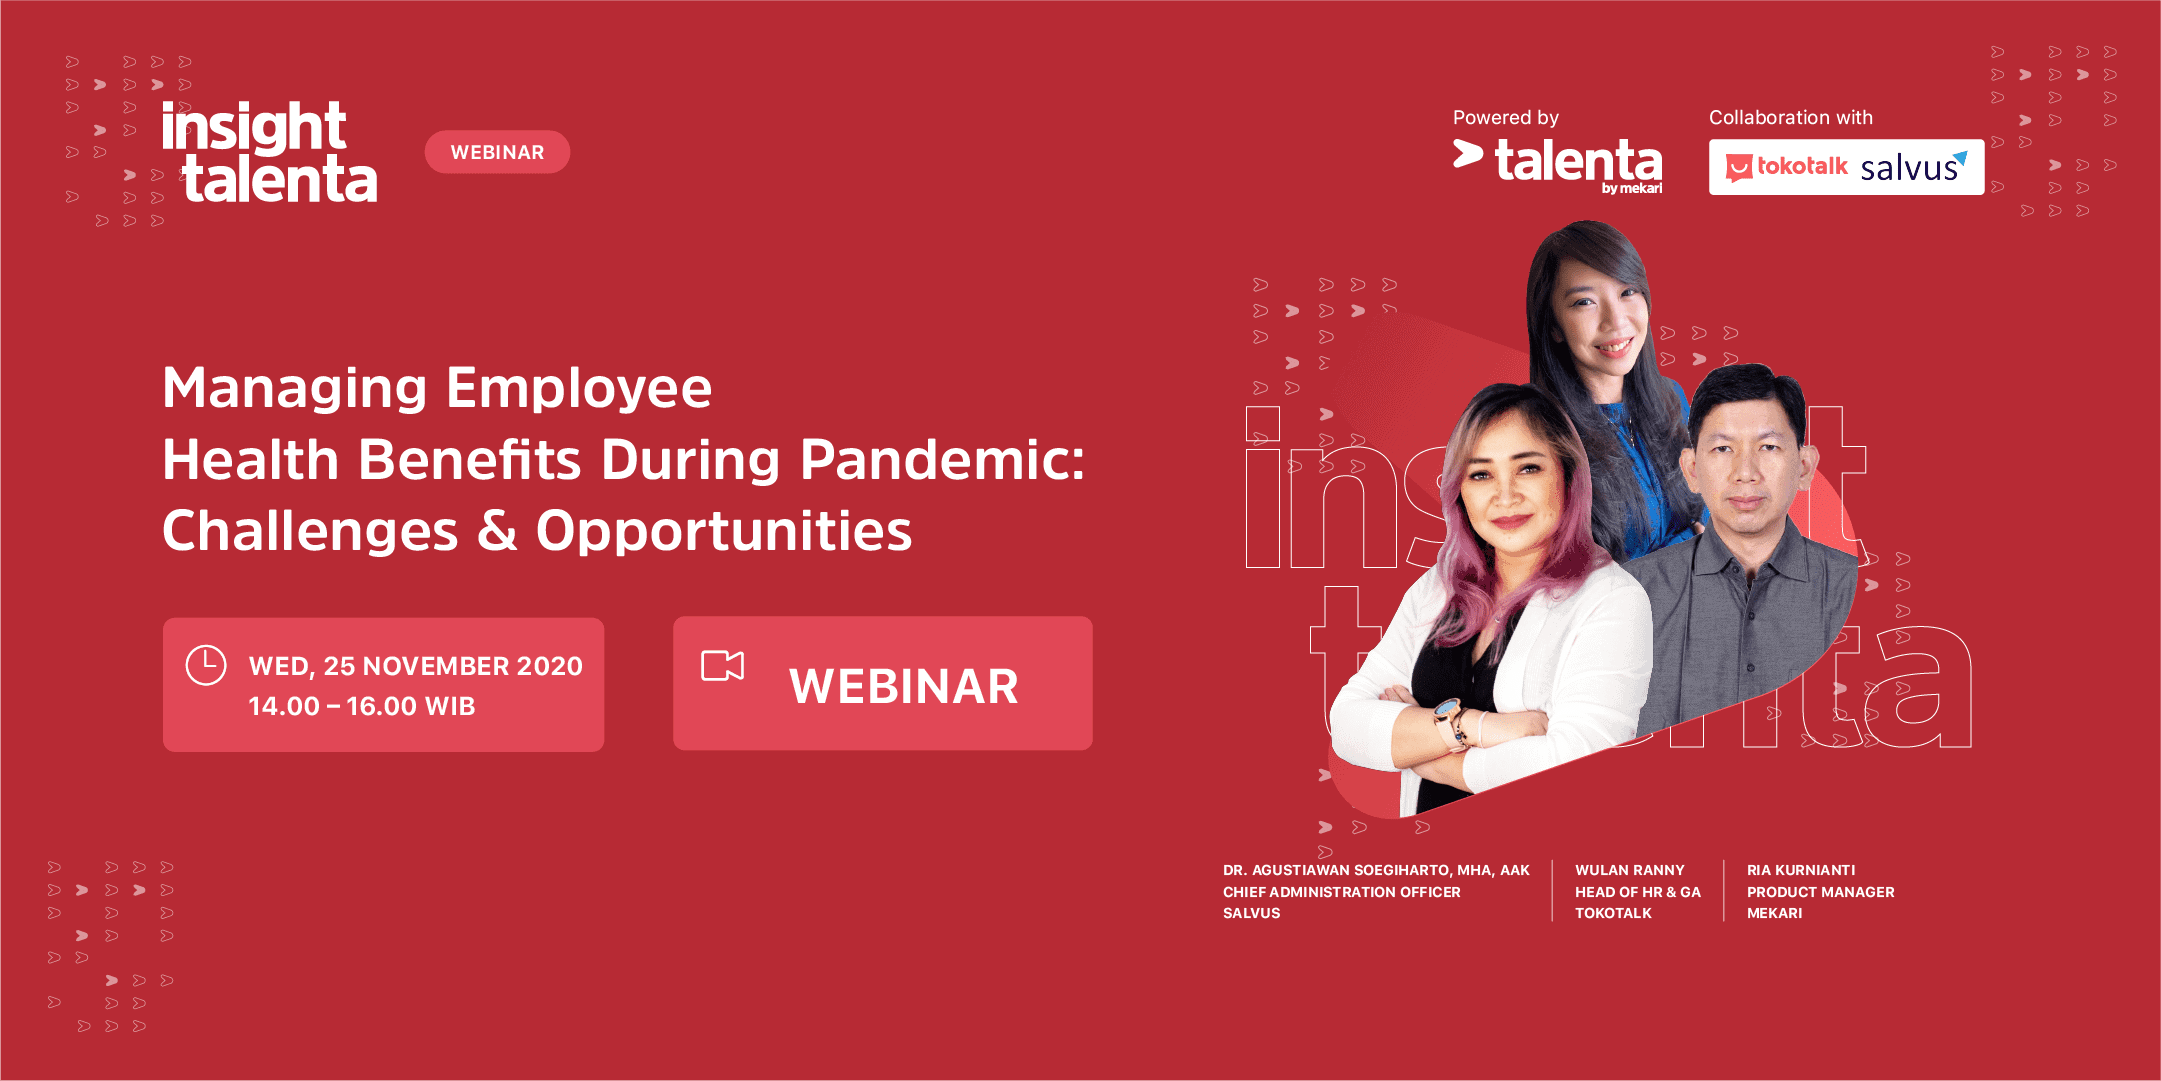 Insight Talenta : Managing Employee Health Benefit During Pandemic : Challenges & Opportunities